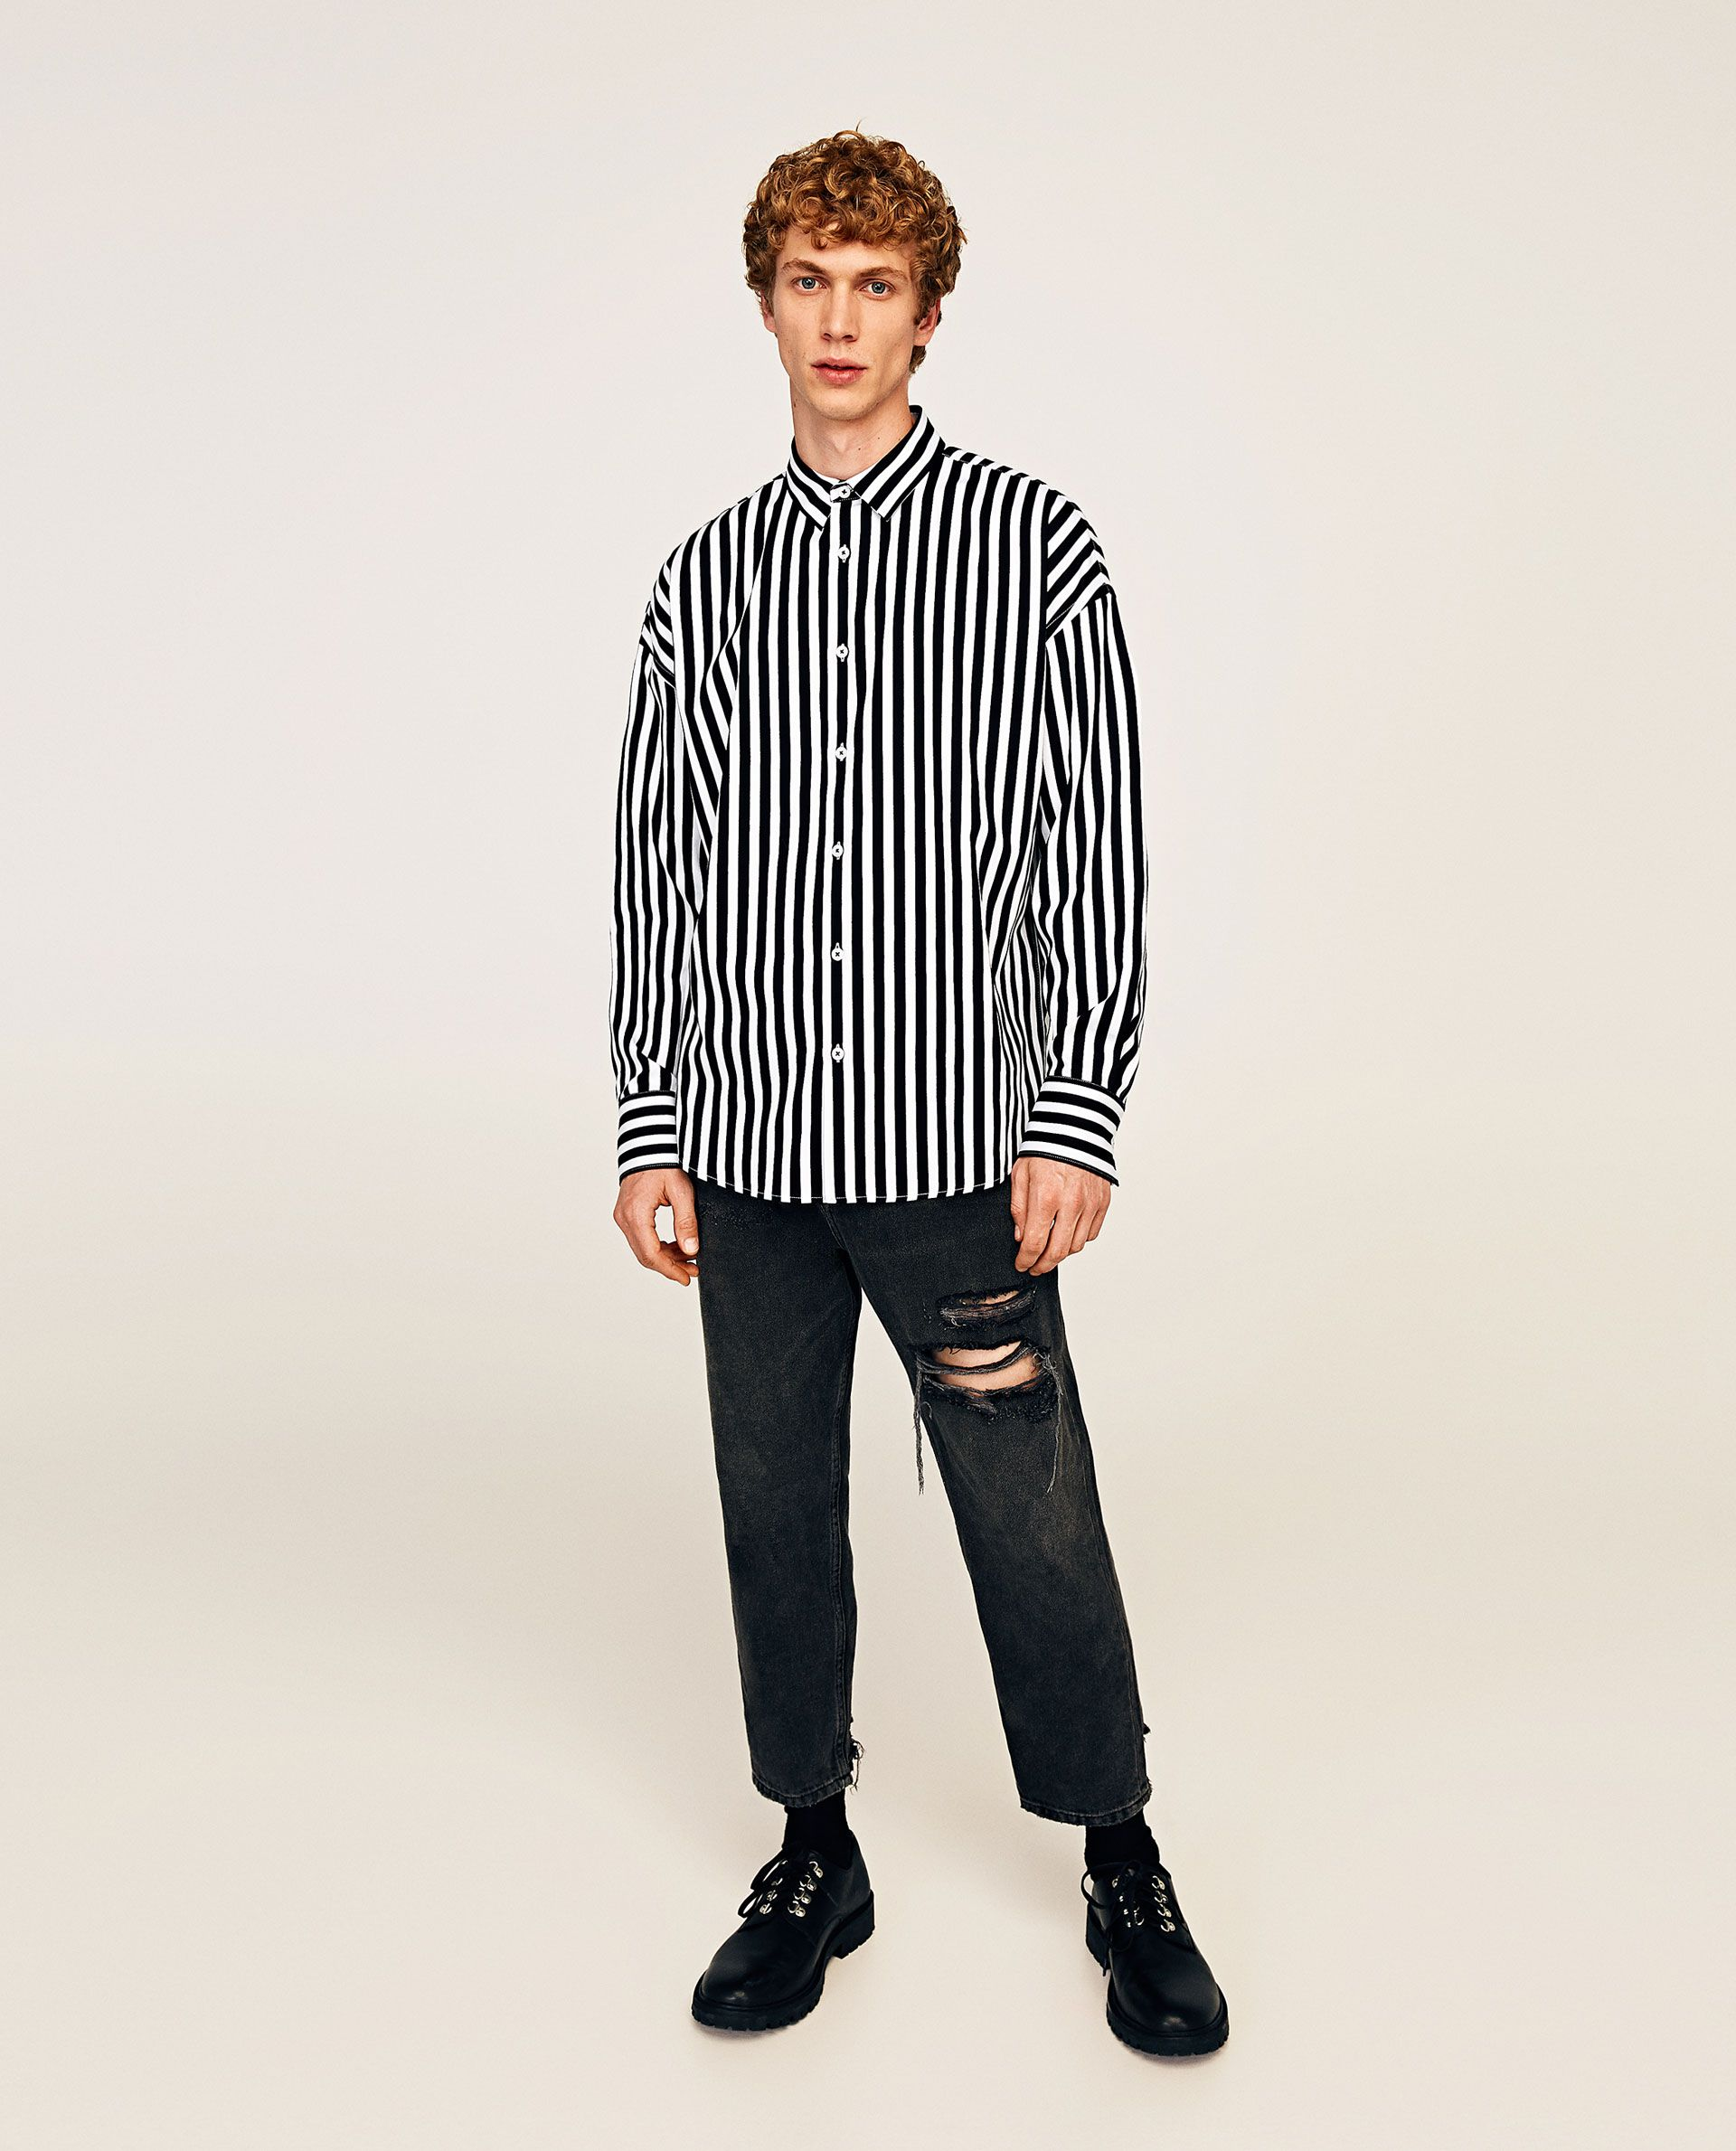 95822878b25 ZARA - MAN - OVERSIZED STRIPED SHIRT